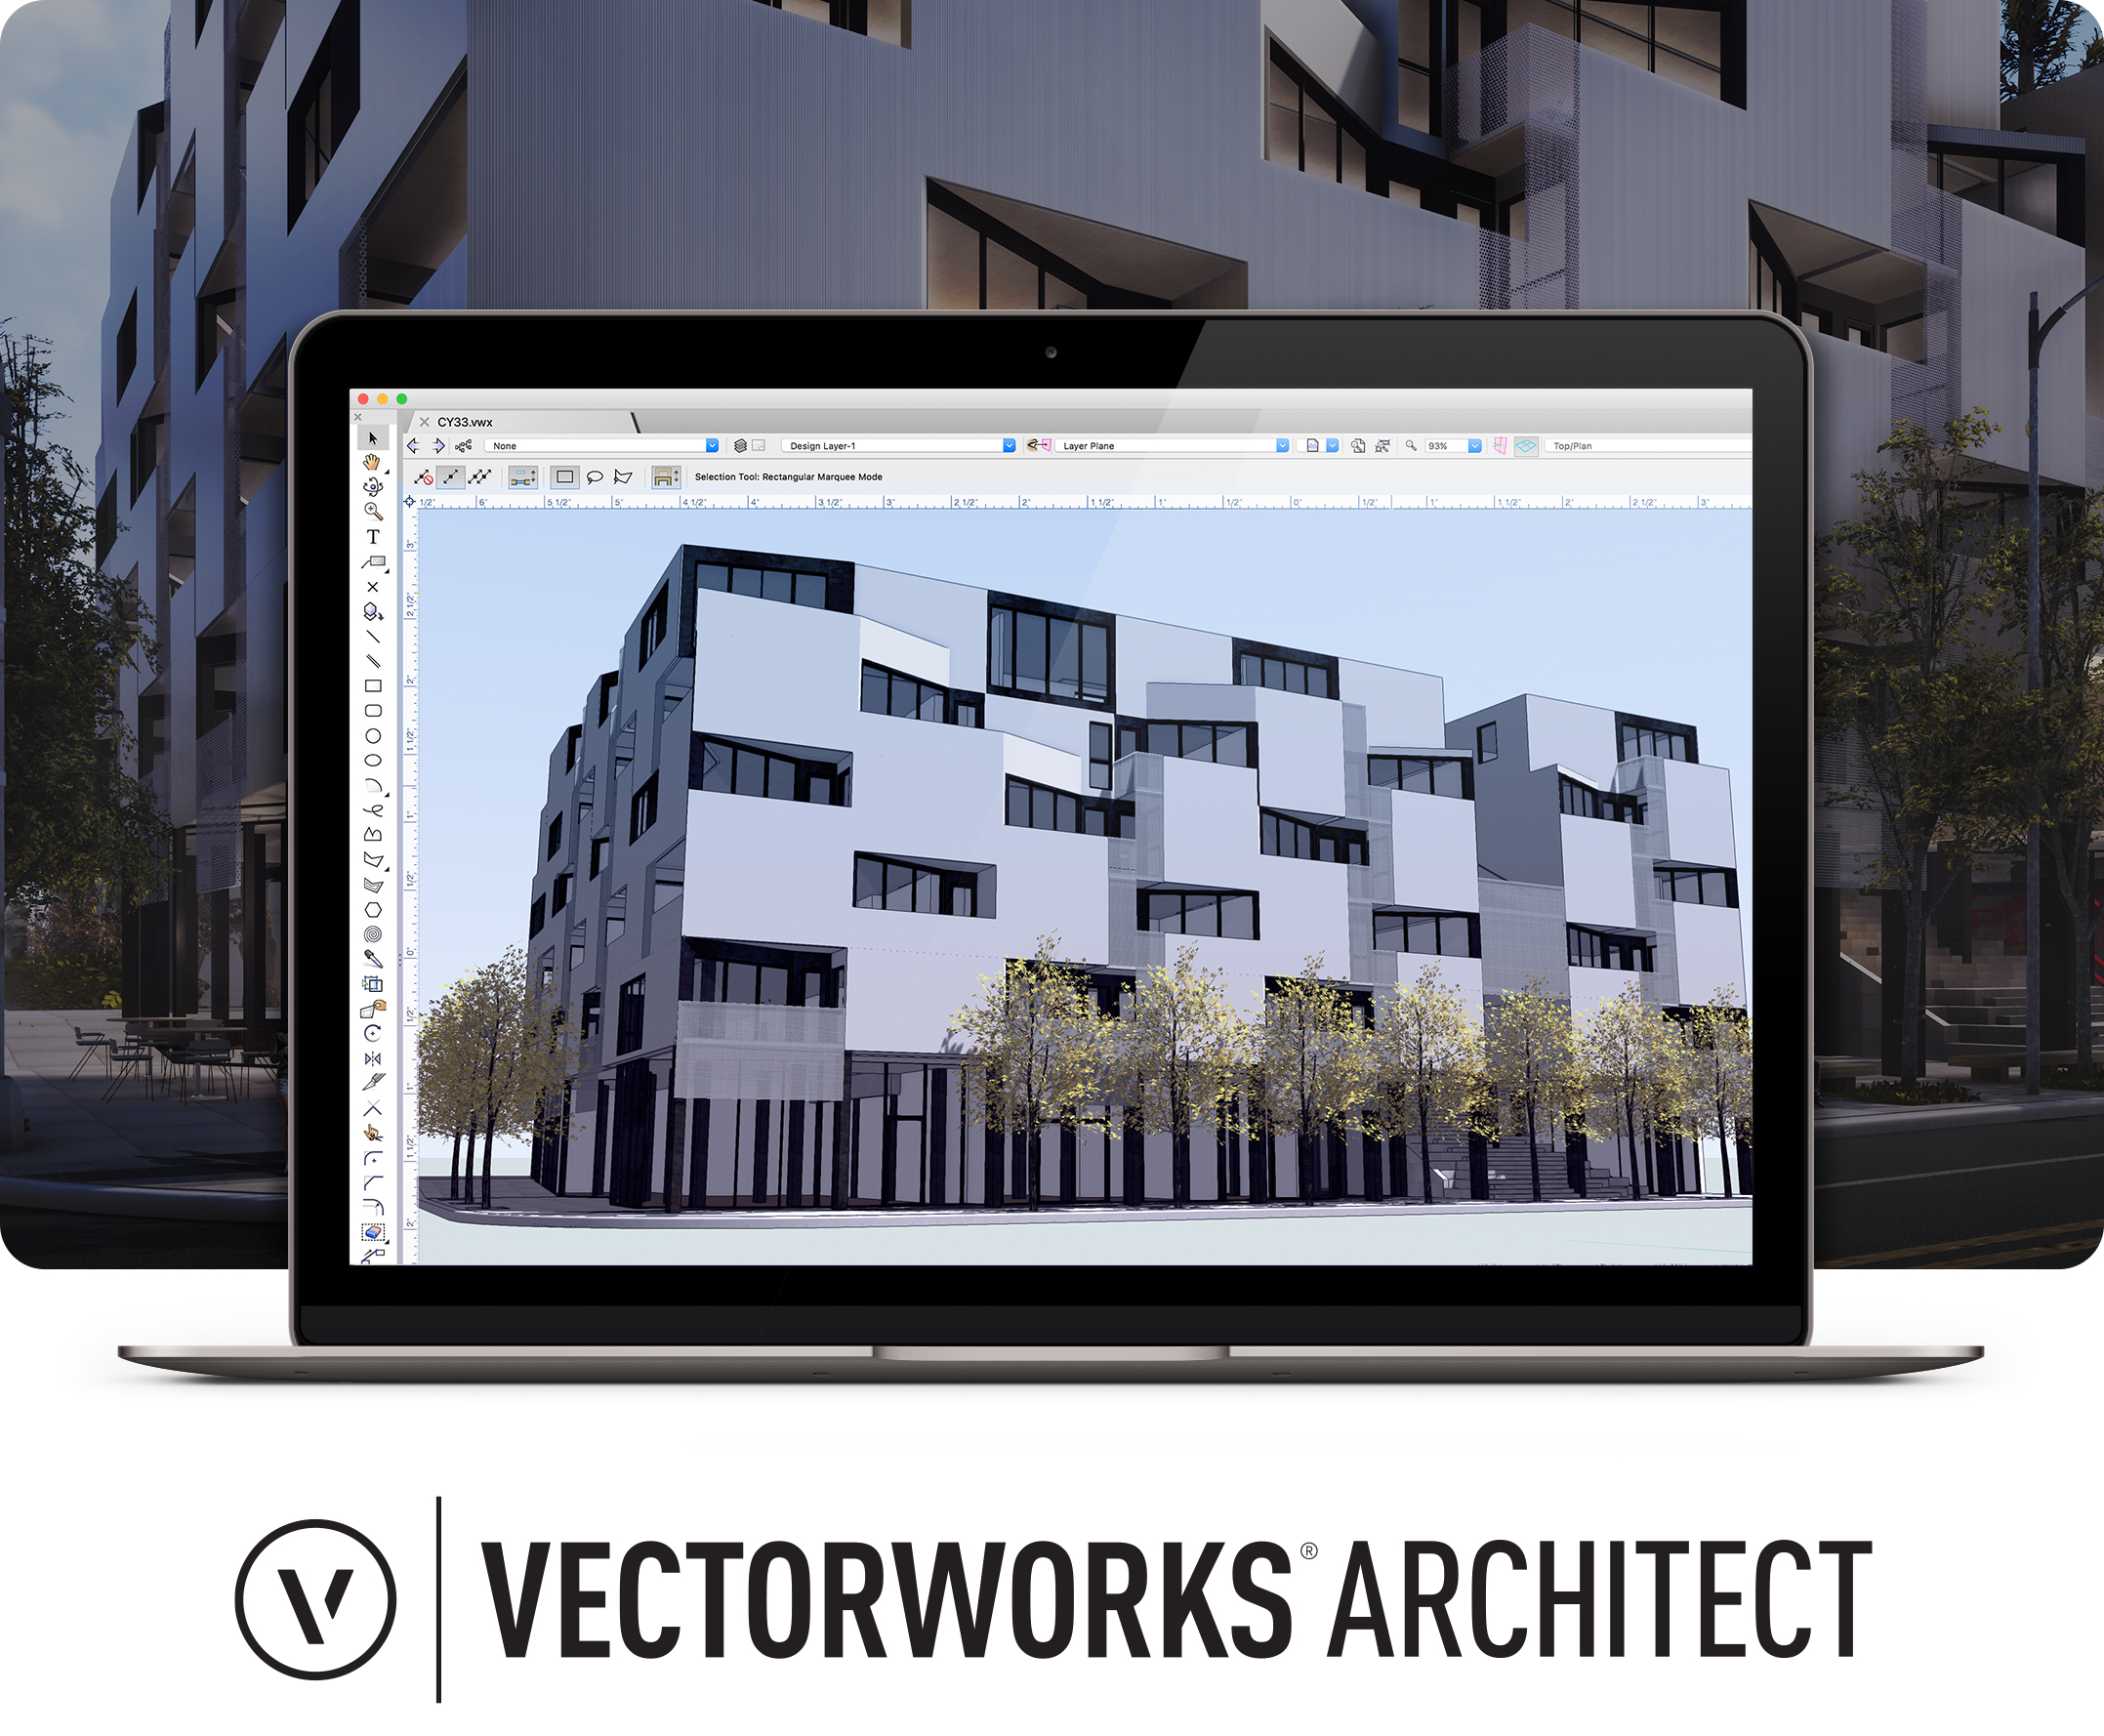 Vectorworks Architect 2020 Getting Started Tutorial